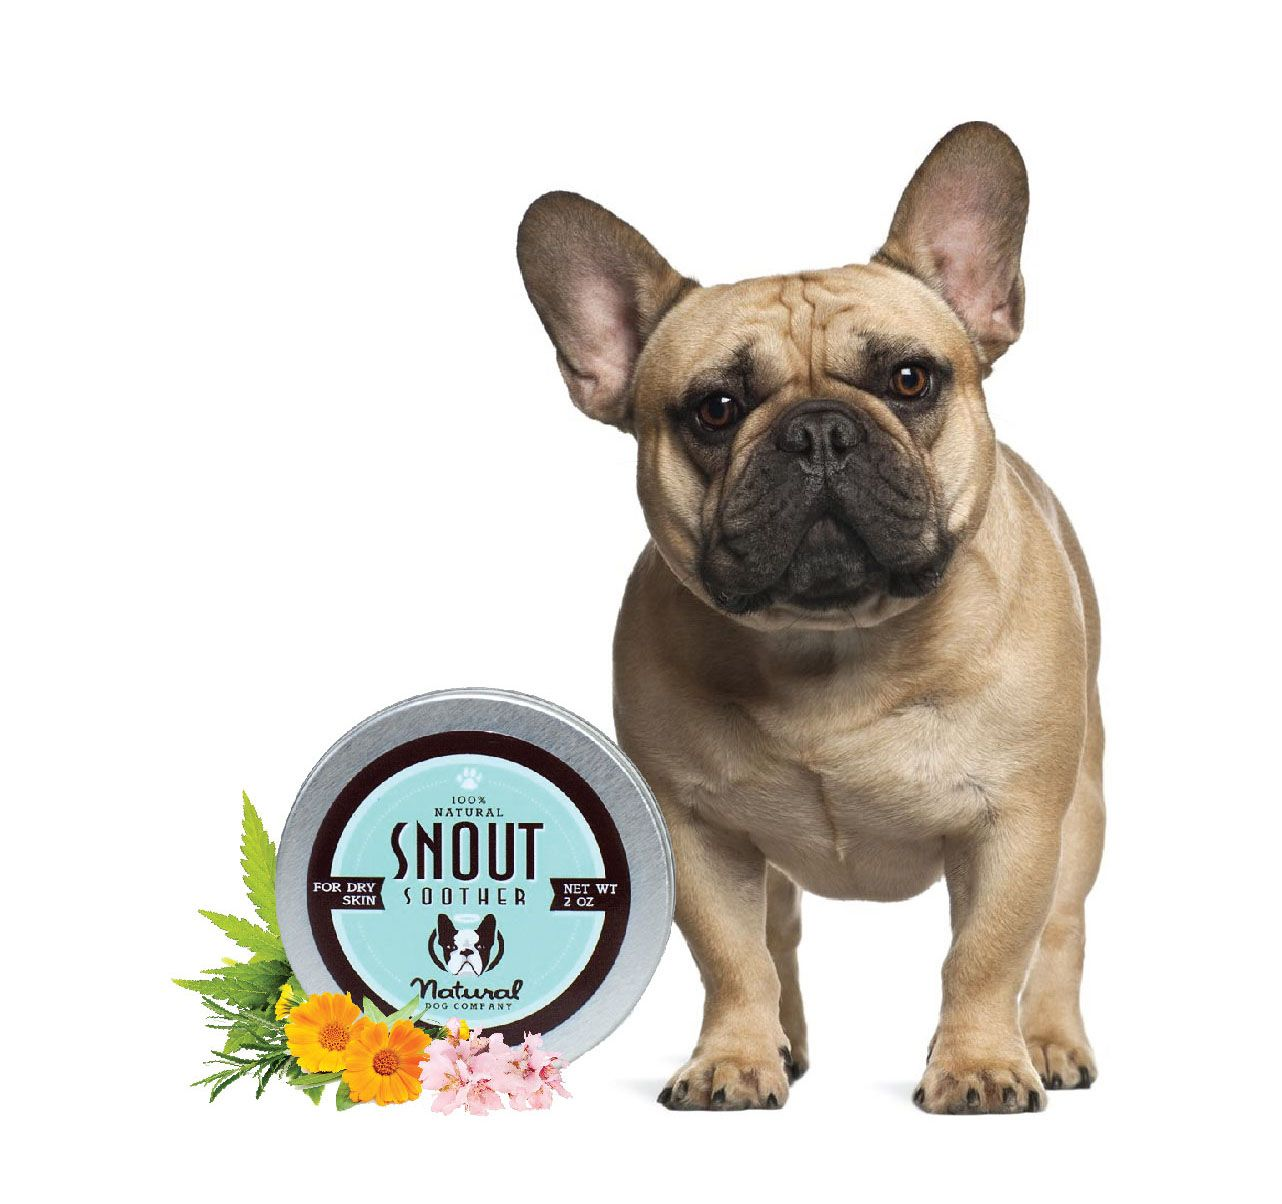 Snout Soother for Frenchie's with Dry Noses!